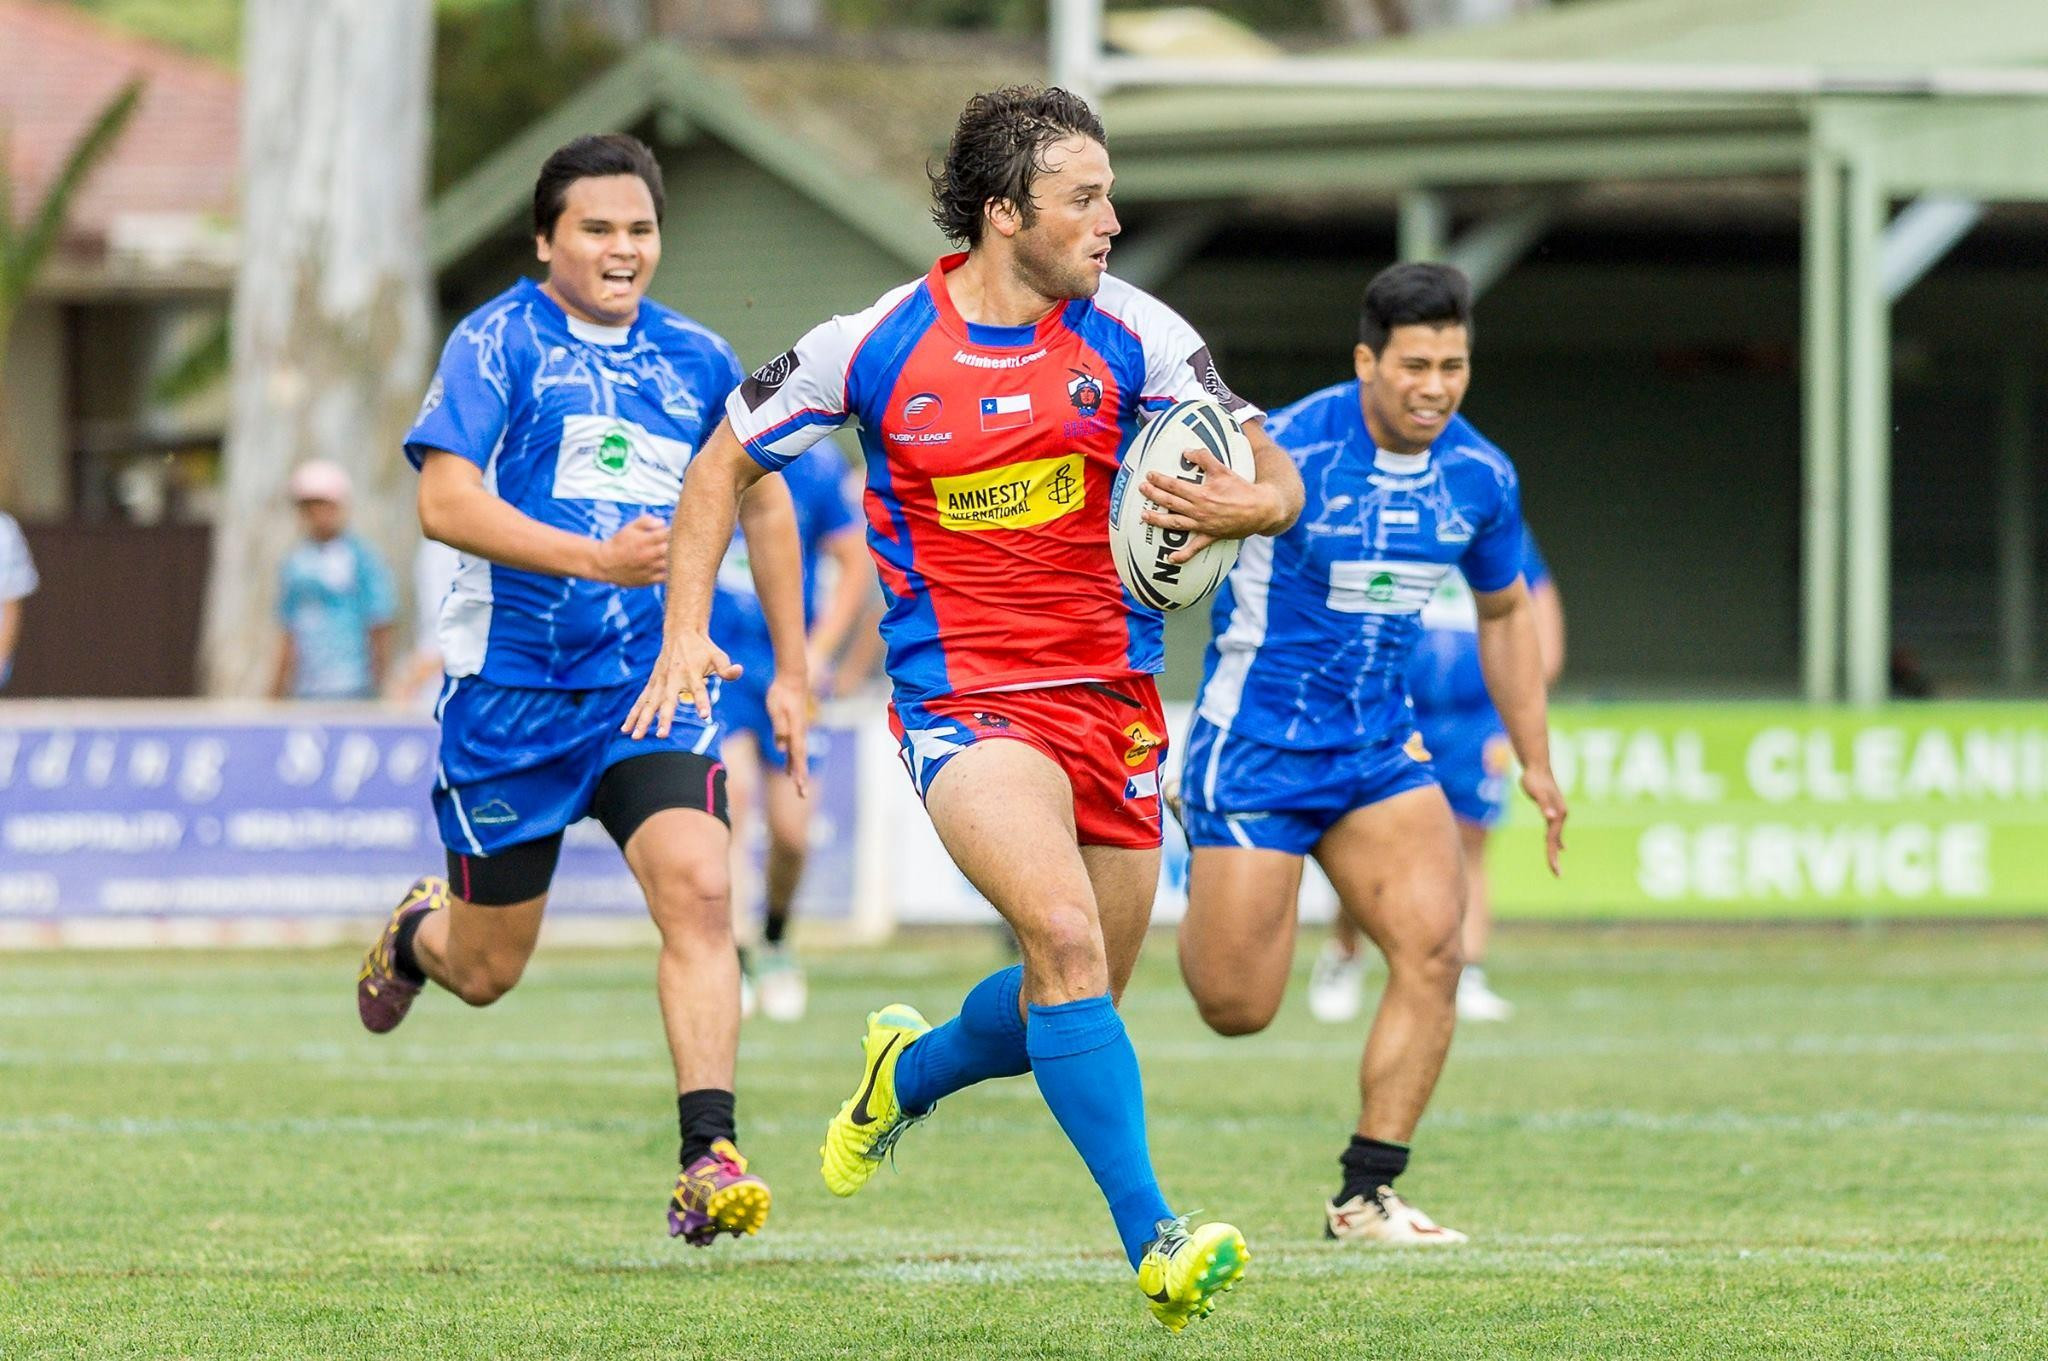 Chile selected as hosts for Latin American Rugby League Championship